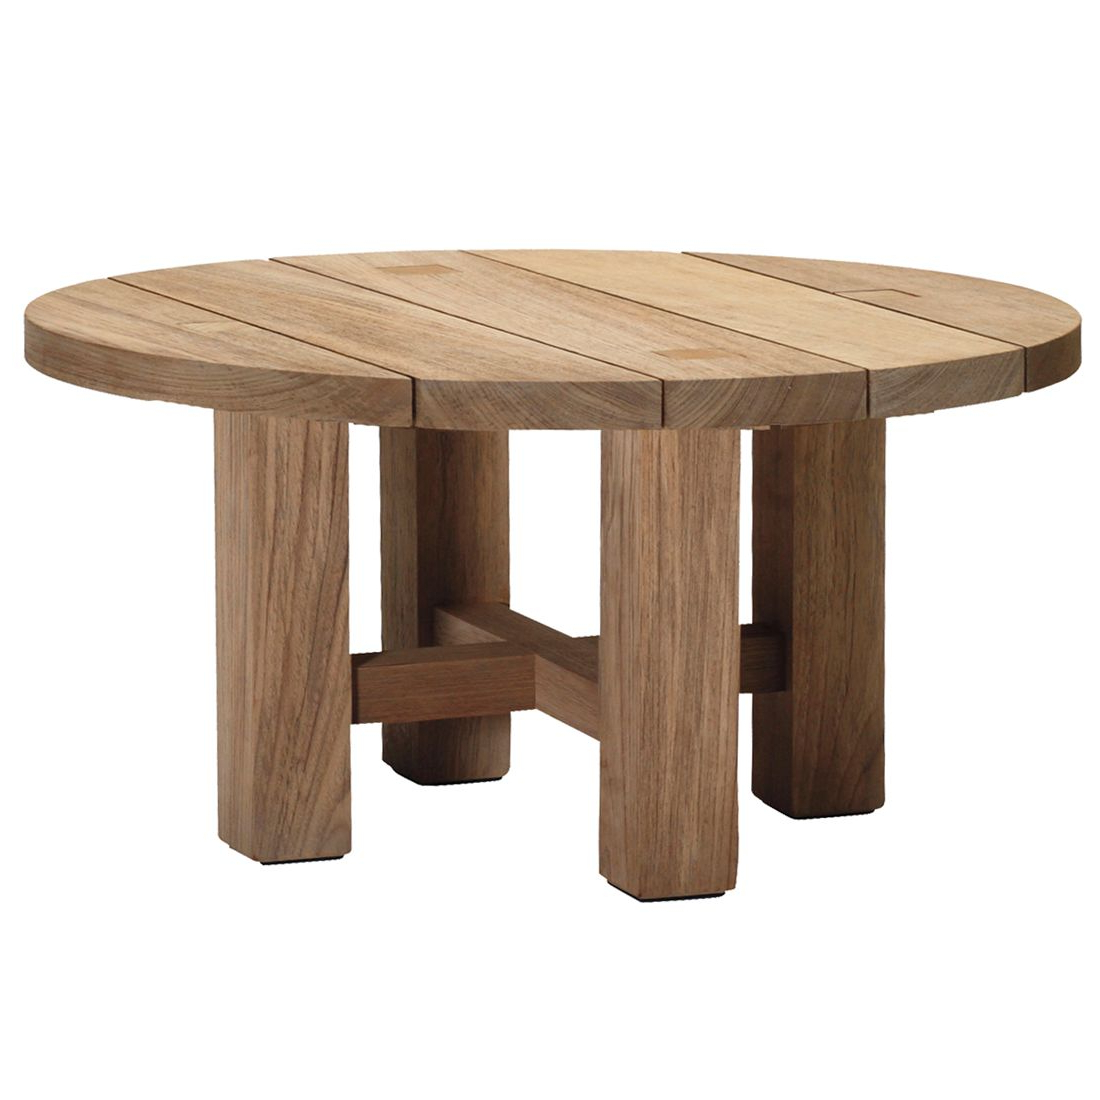 Croquet Outdoor Teak Coffee Table Within Trendy Round Teak Coffee Tables (View 15 of 20)